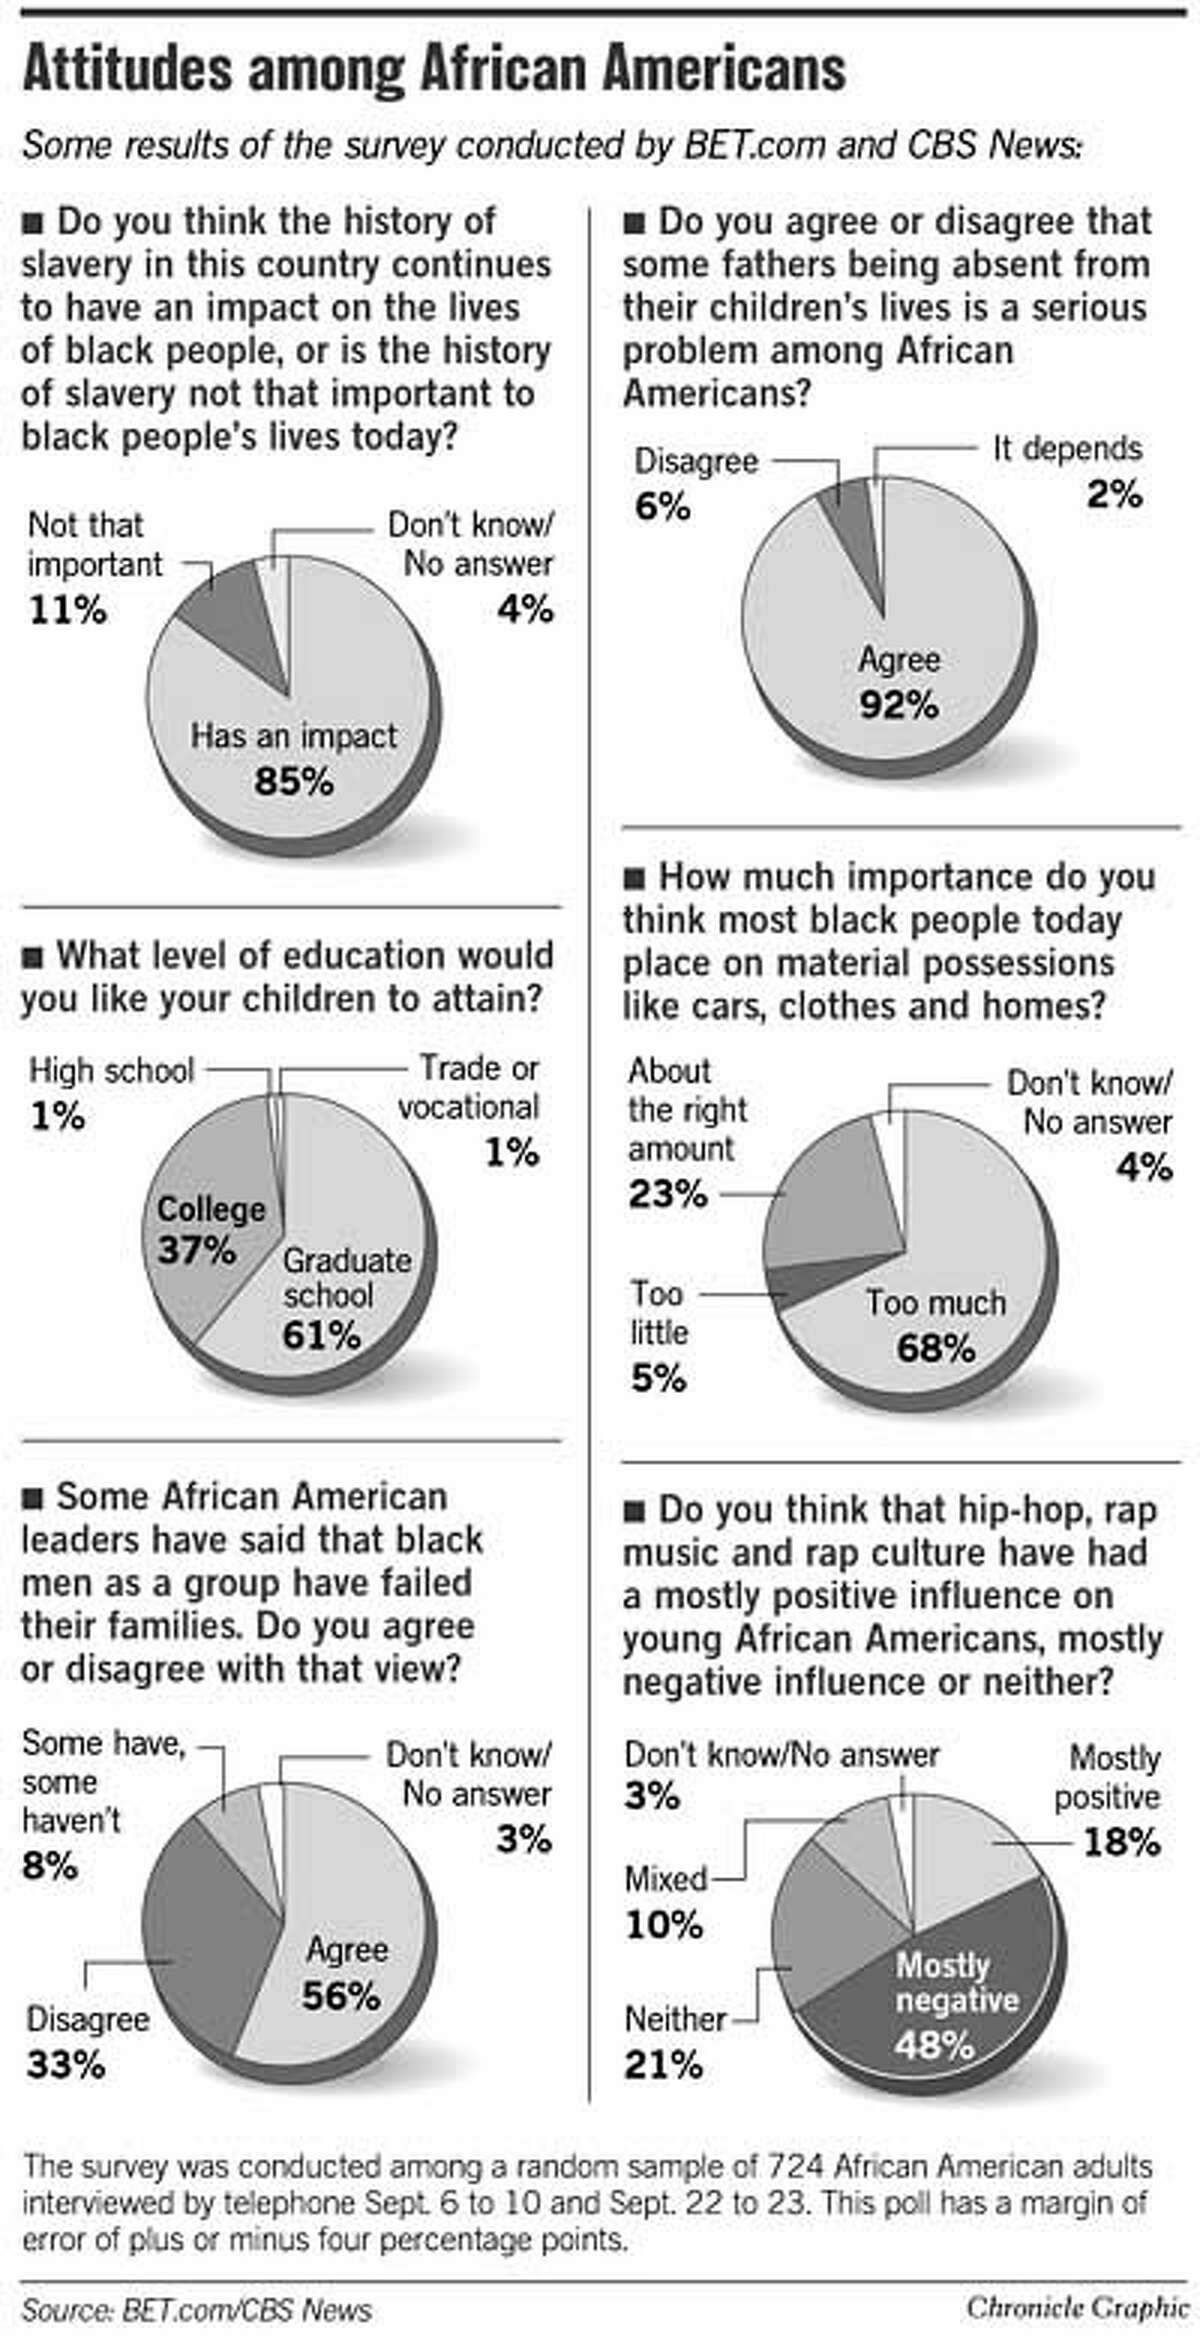 Attitudes Among African Americans. Chronicle Graphic